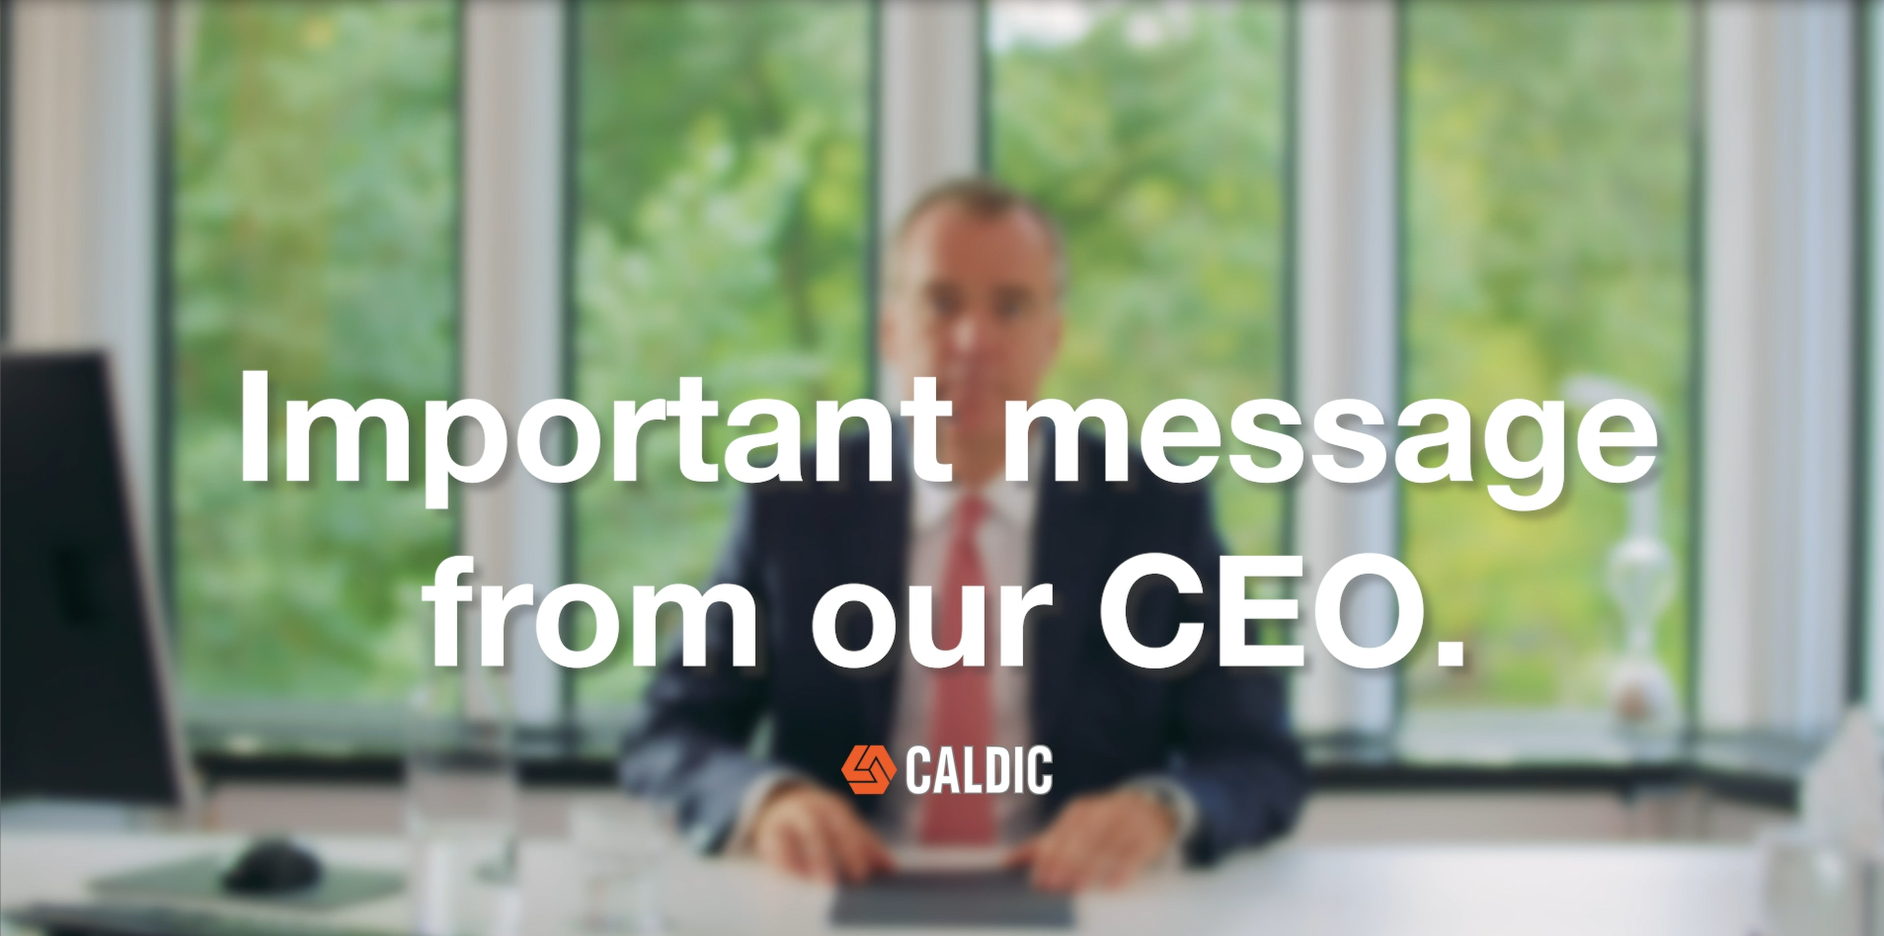 Important message from our CEO - Caldic 50